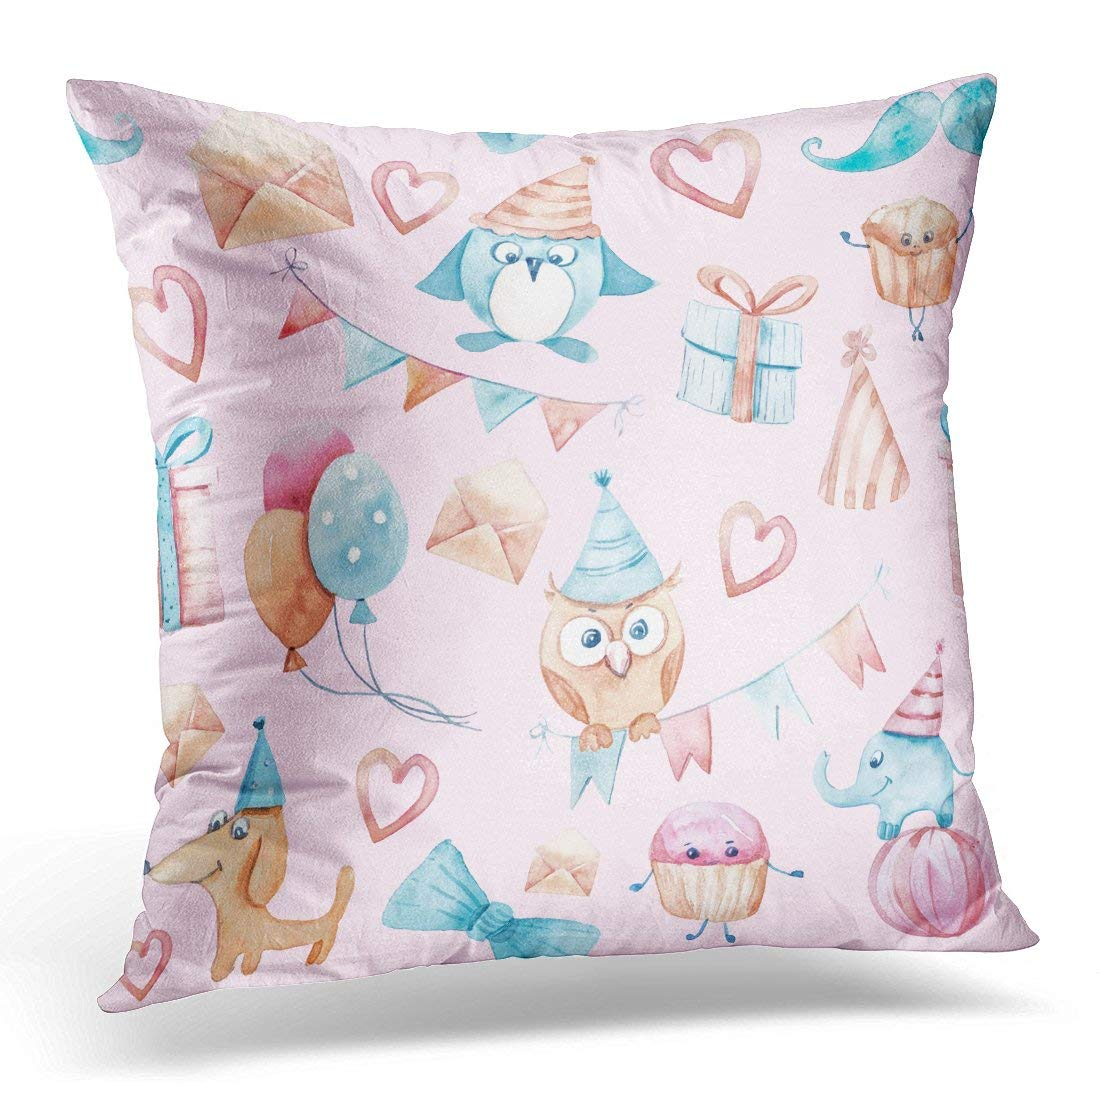 CMFUN Blue Bird Watercolor on Pink Hand with Flags Garlands Dog Cakes Ice Cream Elephant Hearts Penguin Box Pillow Case Pillow Cover 20x20 inch